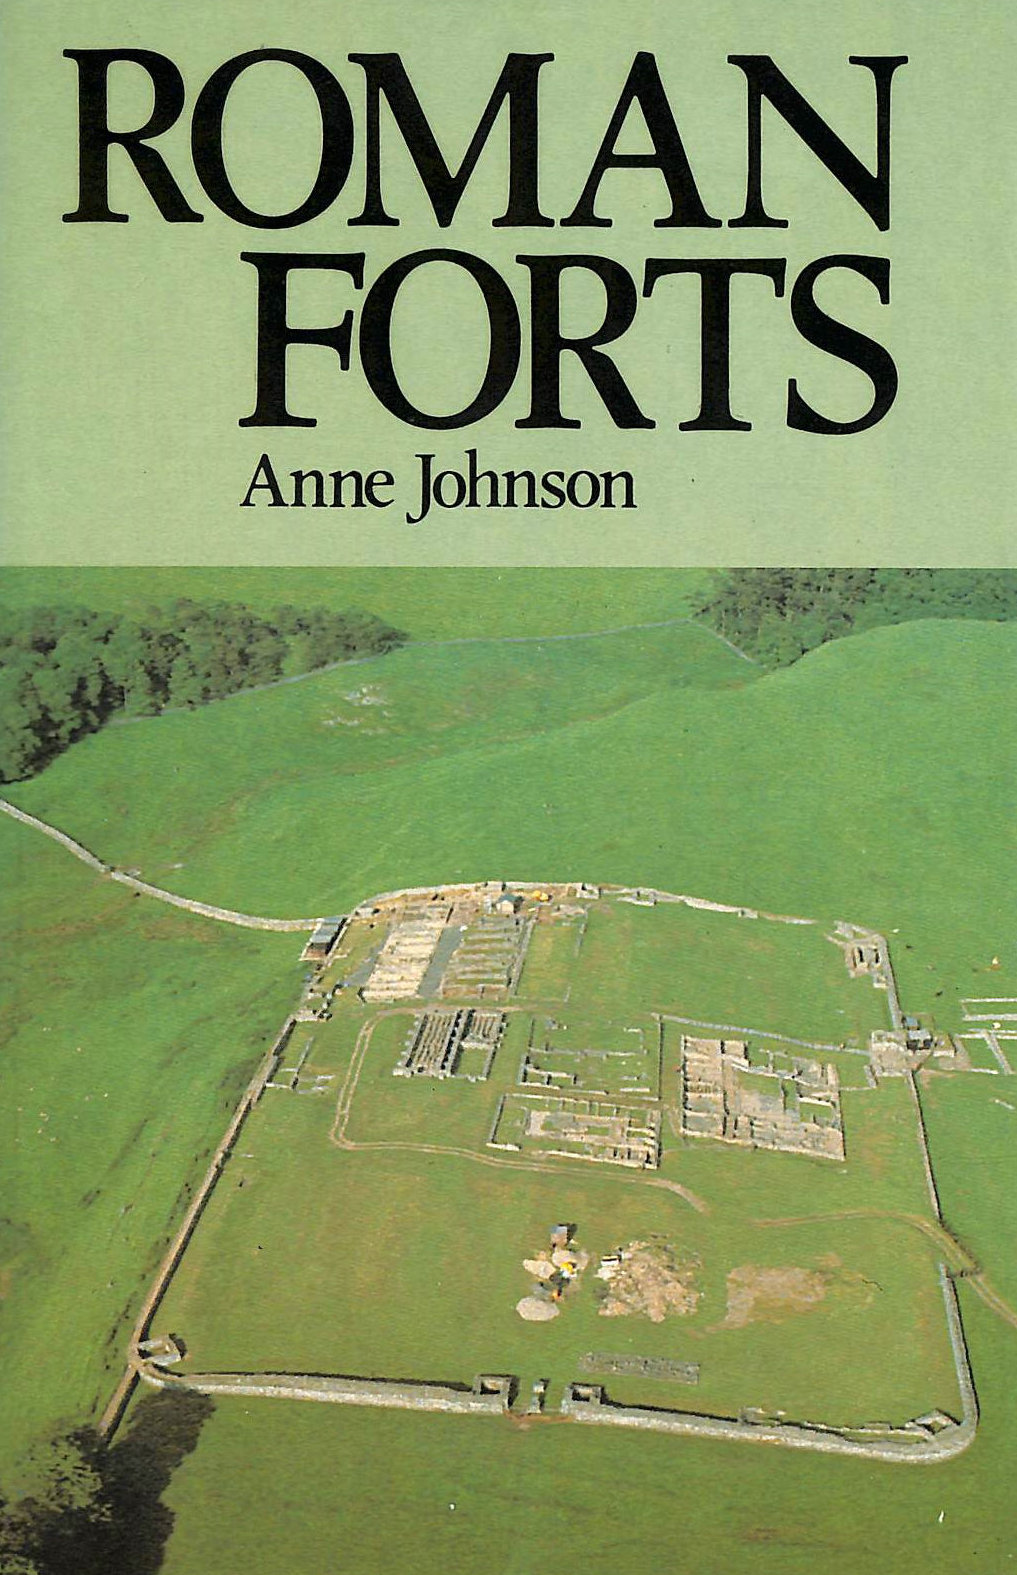 Image for Roman Forts of the First and Second Centuries A.D.in Britain and the German Provinces